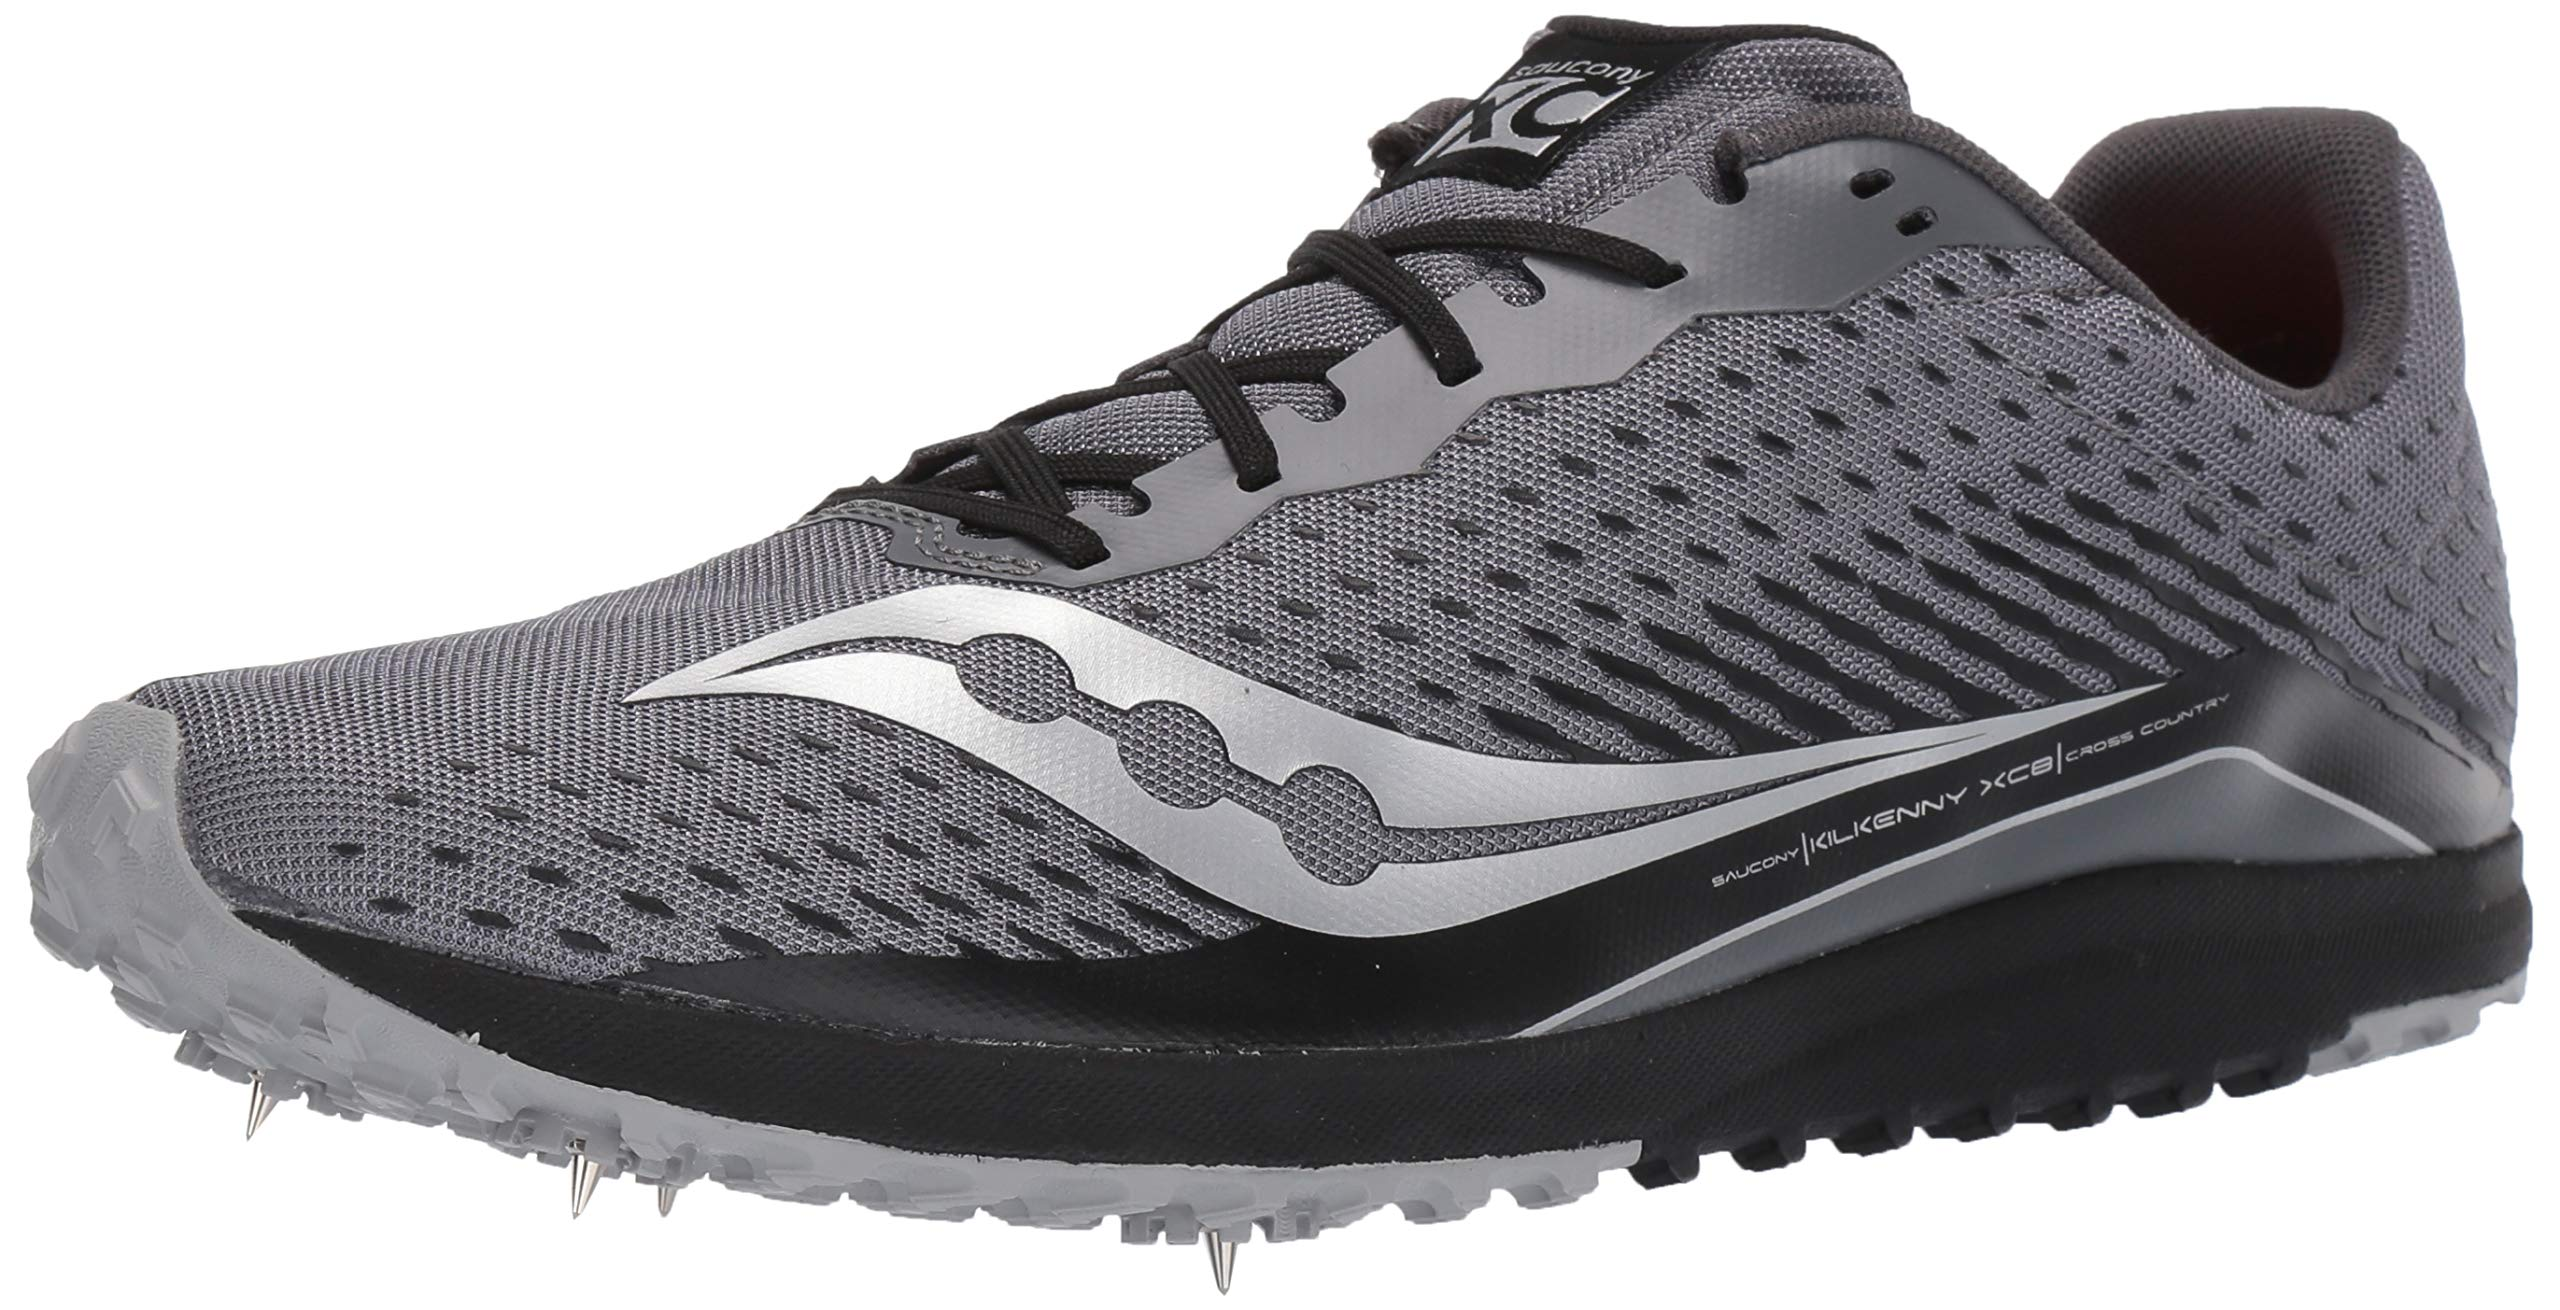 Saucony Men's Kilkenny XC 8 Track Shoe, Black/Silver, 5.5 Medium US by Saucony